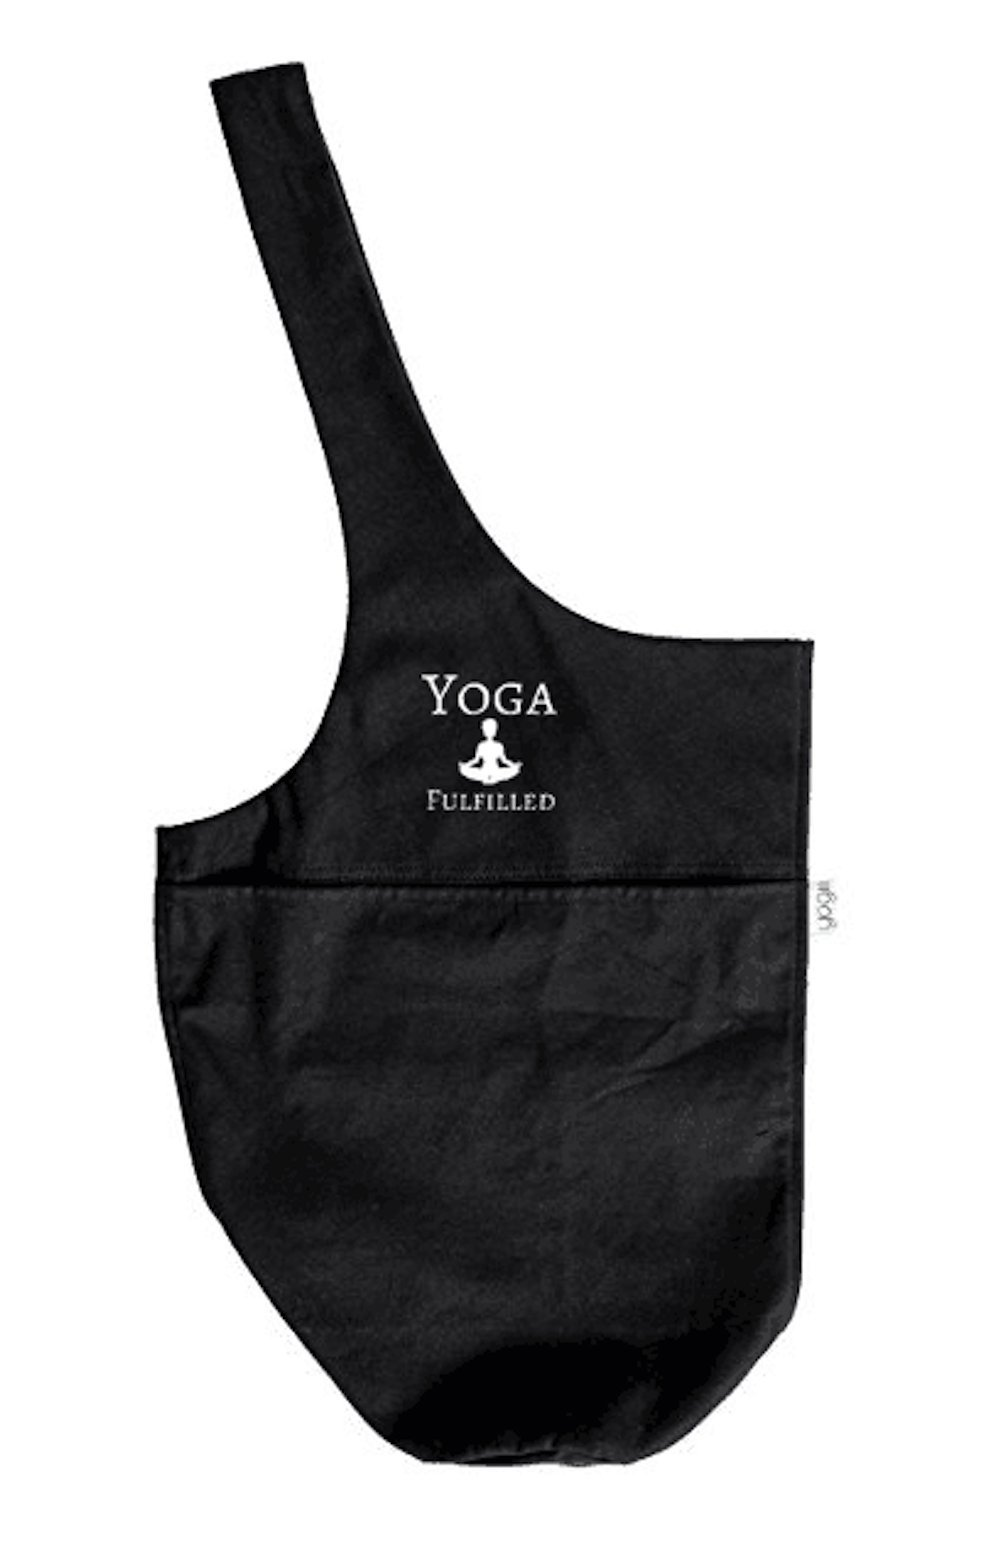 Yoga Fulfilled Yoga Mat Travel Tote Gym Bag Sling Carrier Strap w/Large Side Pocket and Zipper Pocket for Women/Men by Canvas Non Slip Slip Resistant Fits Most Yoga Mat Sizes